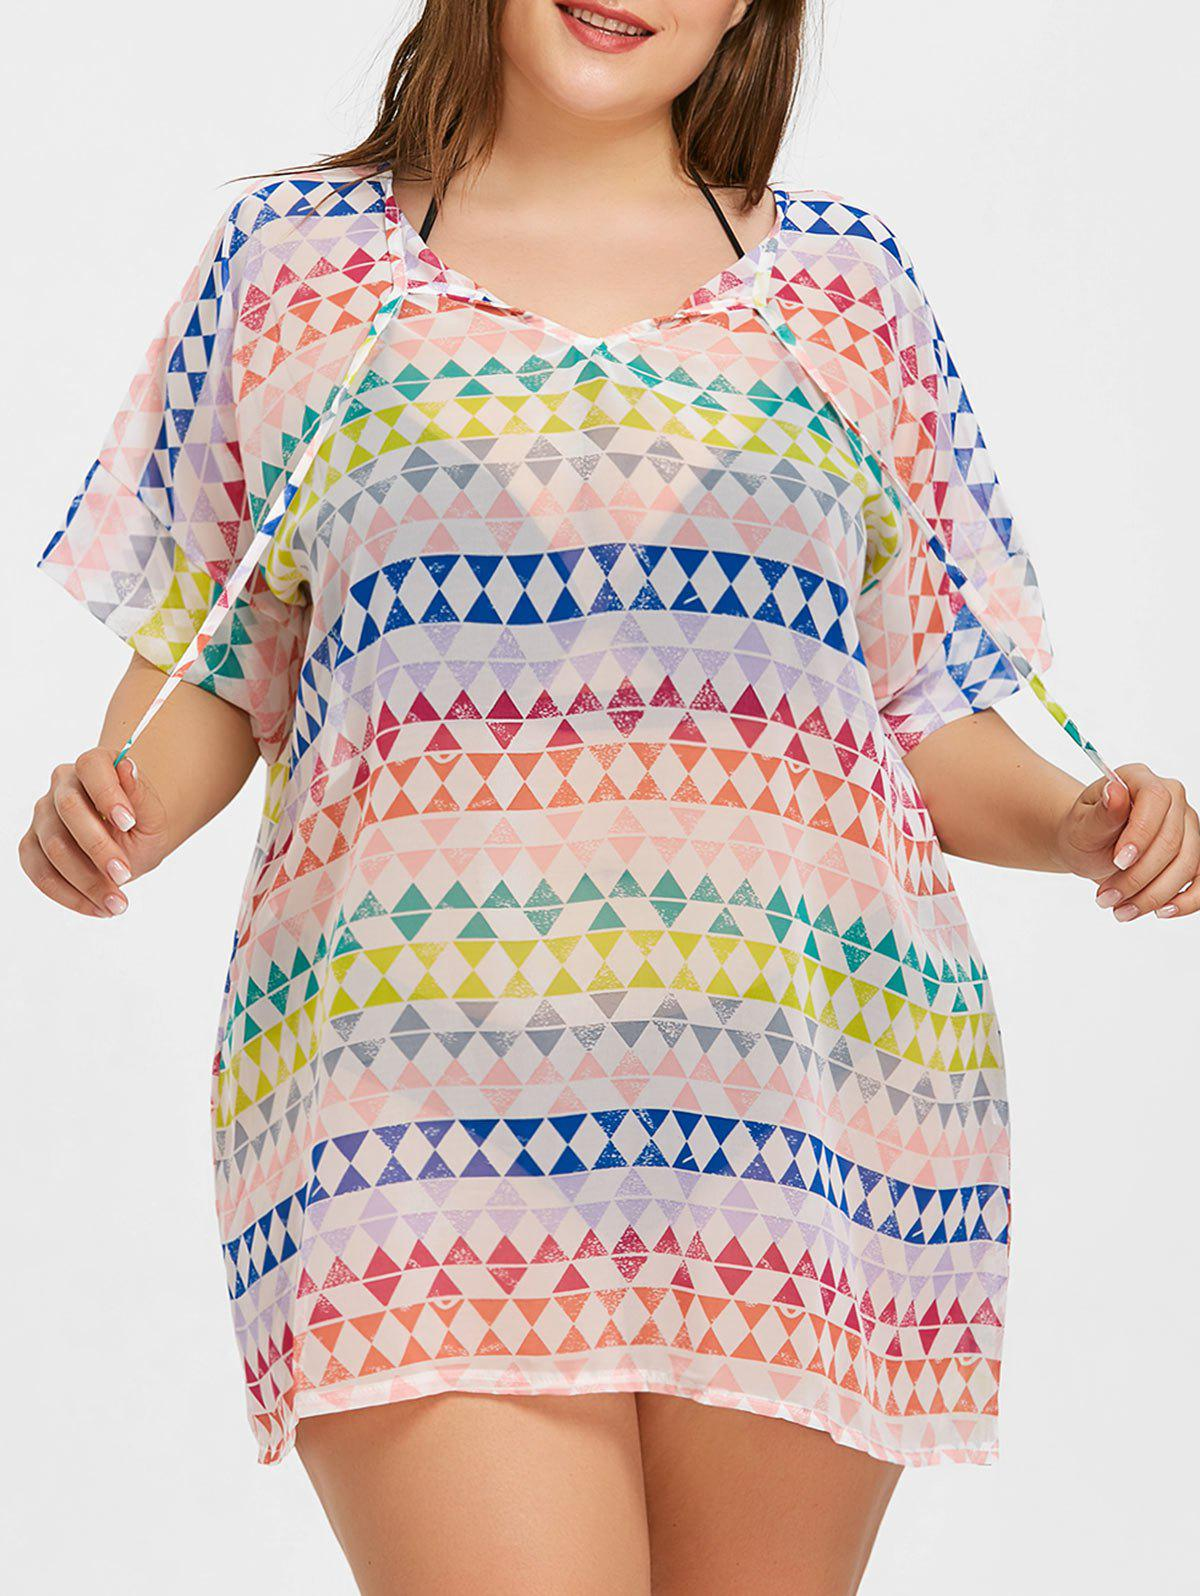 Chiffon Plus Size Beach Cover Up bohemia ethnic printed beach chiffon cover up